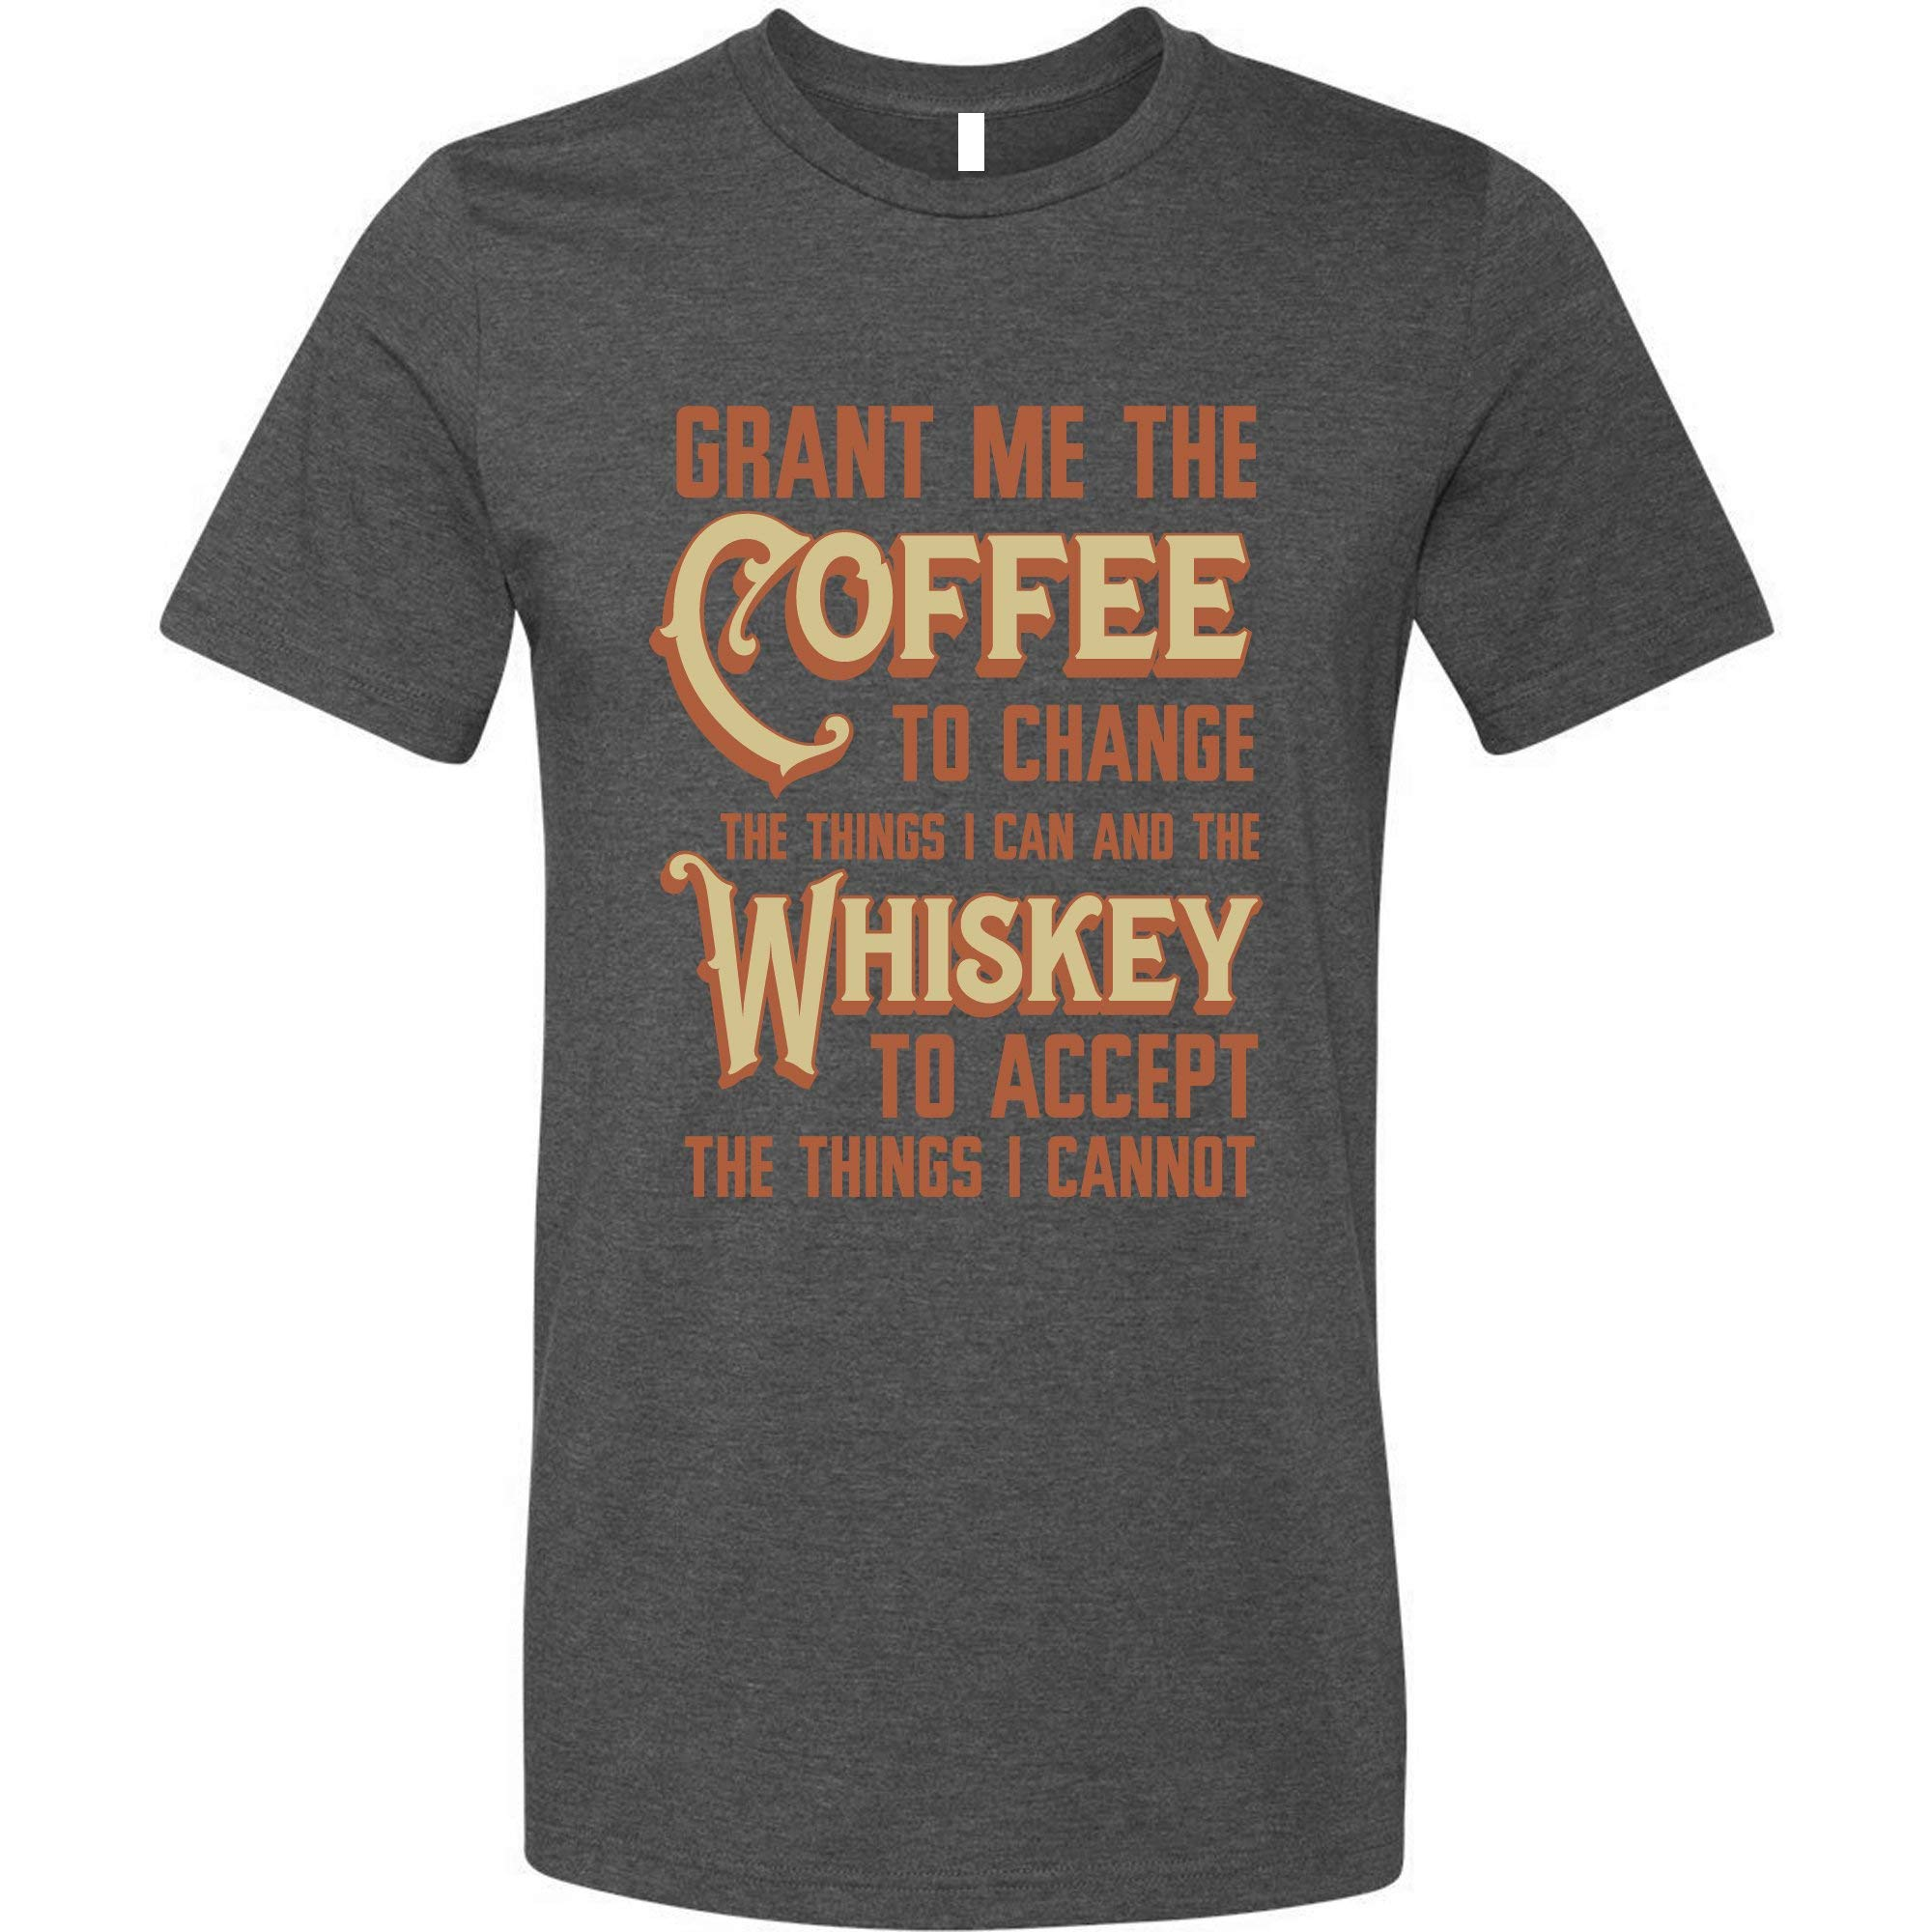 GunShowTees Men's Grant Me Coffee to Change Things I Can Whiskey to Accept…Shirt